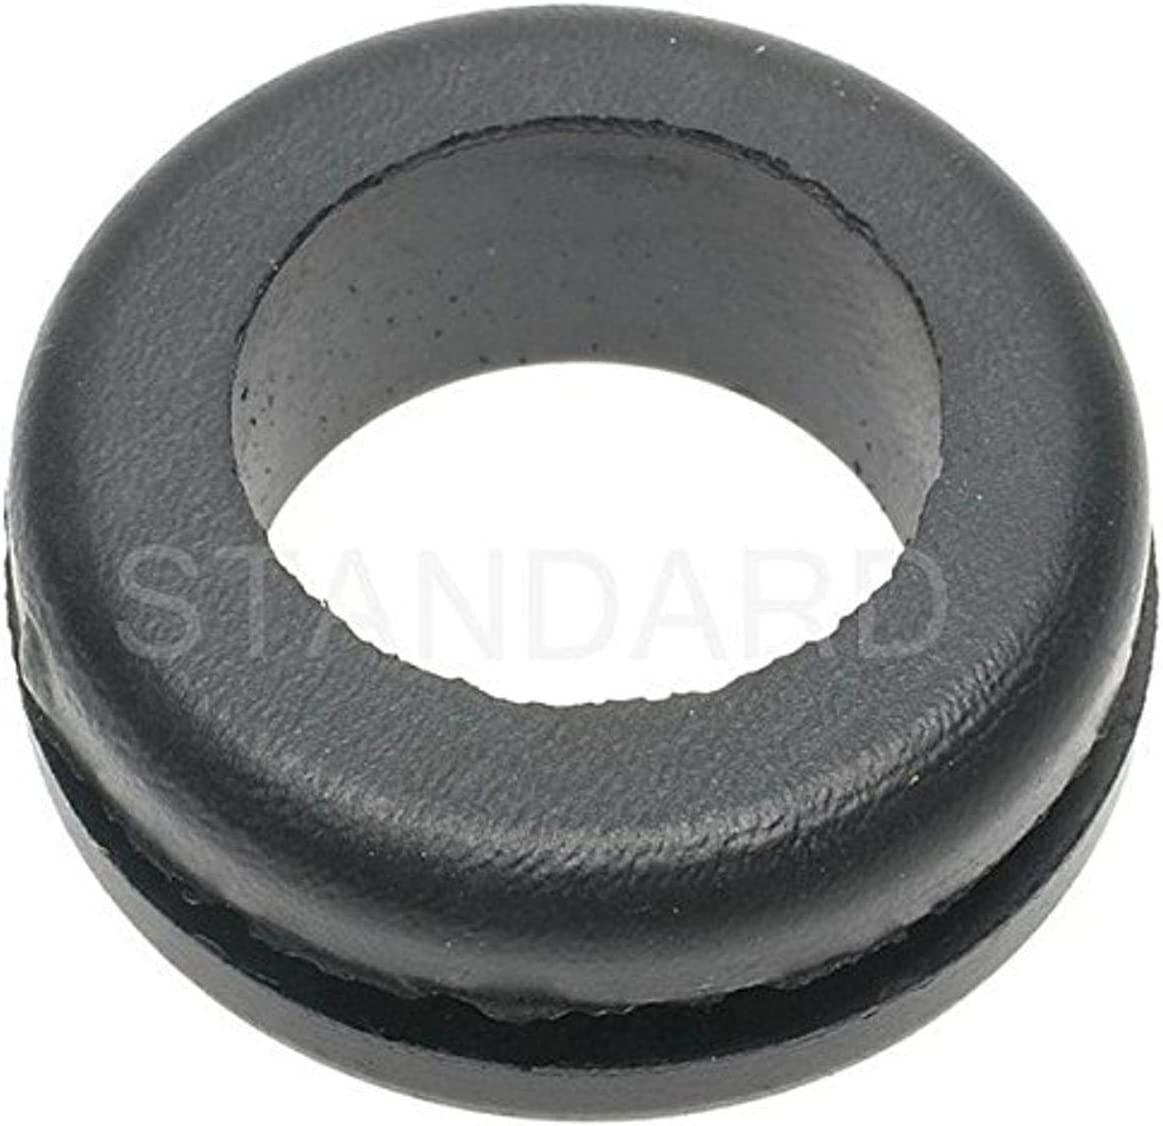 Max 66% OFF Standard Motor Products 2021 spring and summer new GV2 Valve PCV Grommet